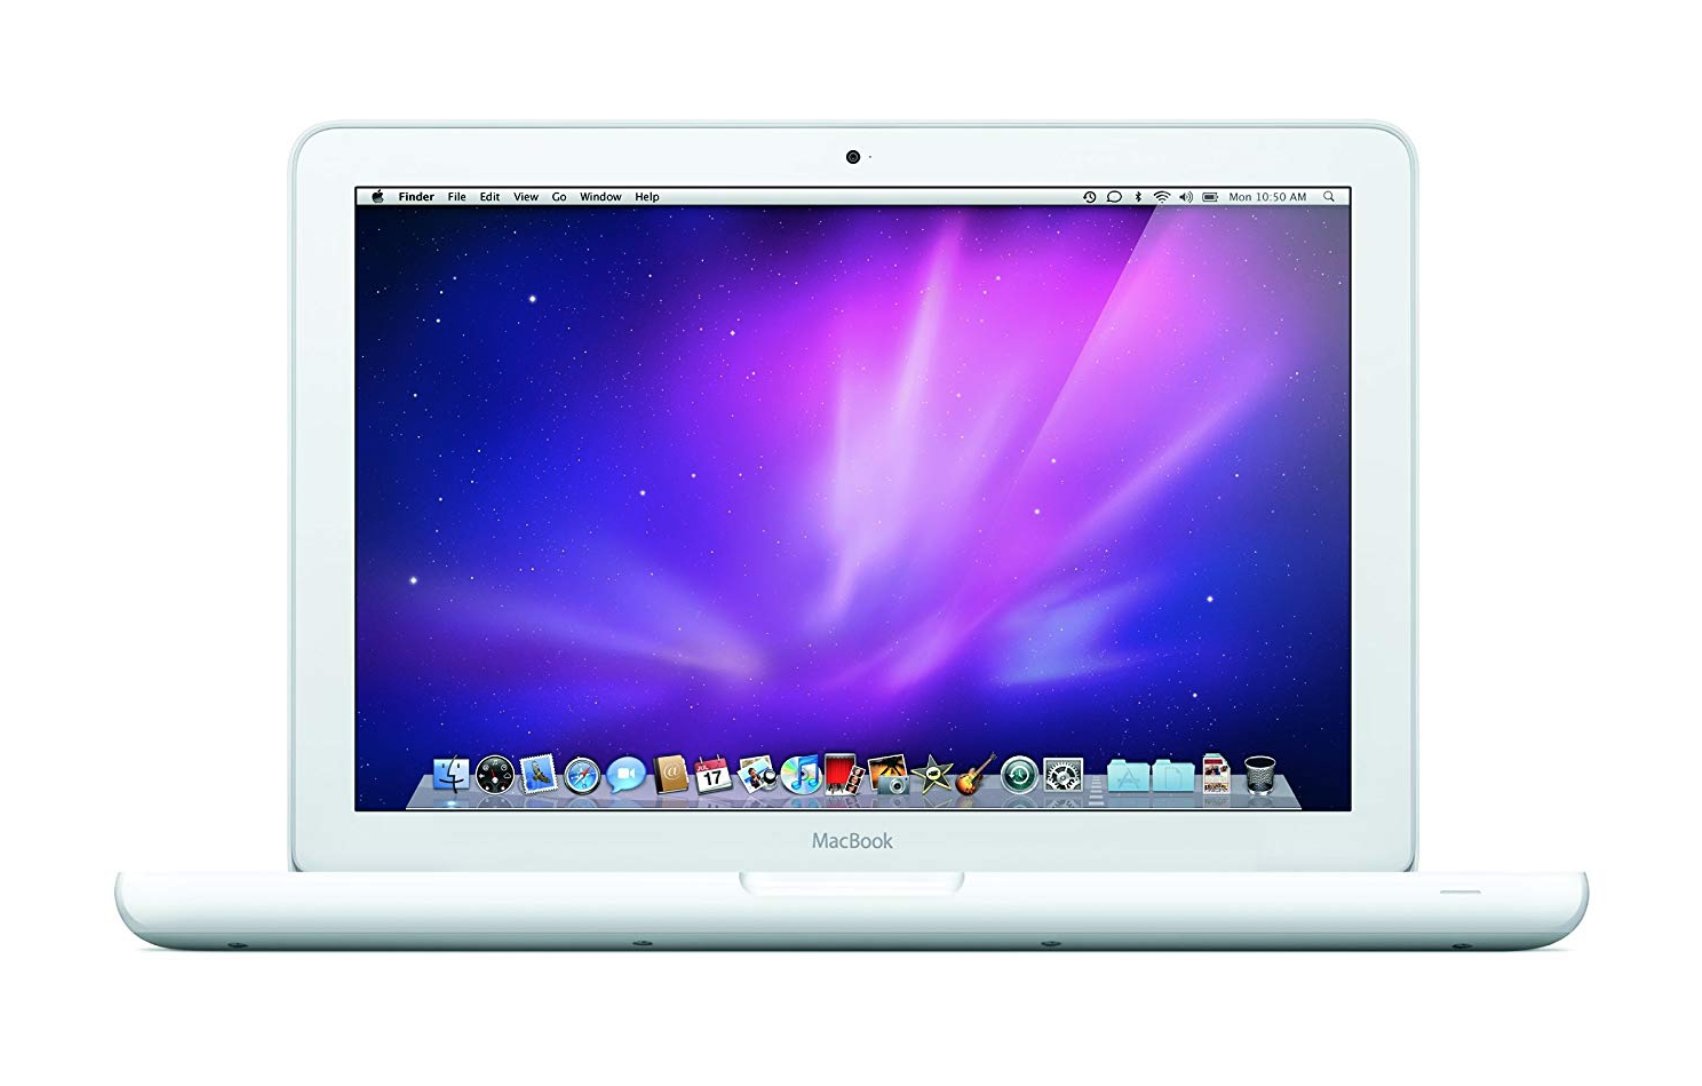 Apple macbook unibody white 6.1